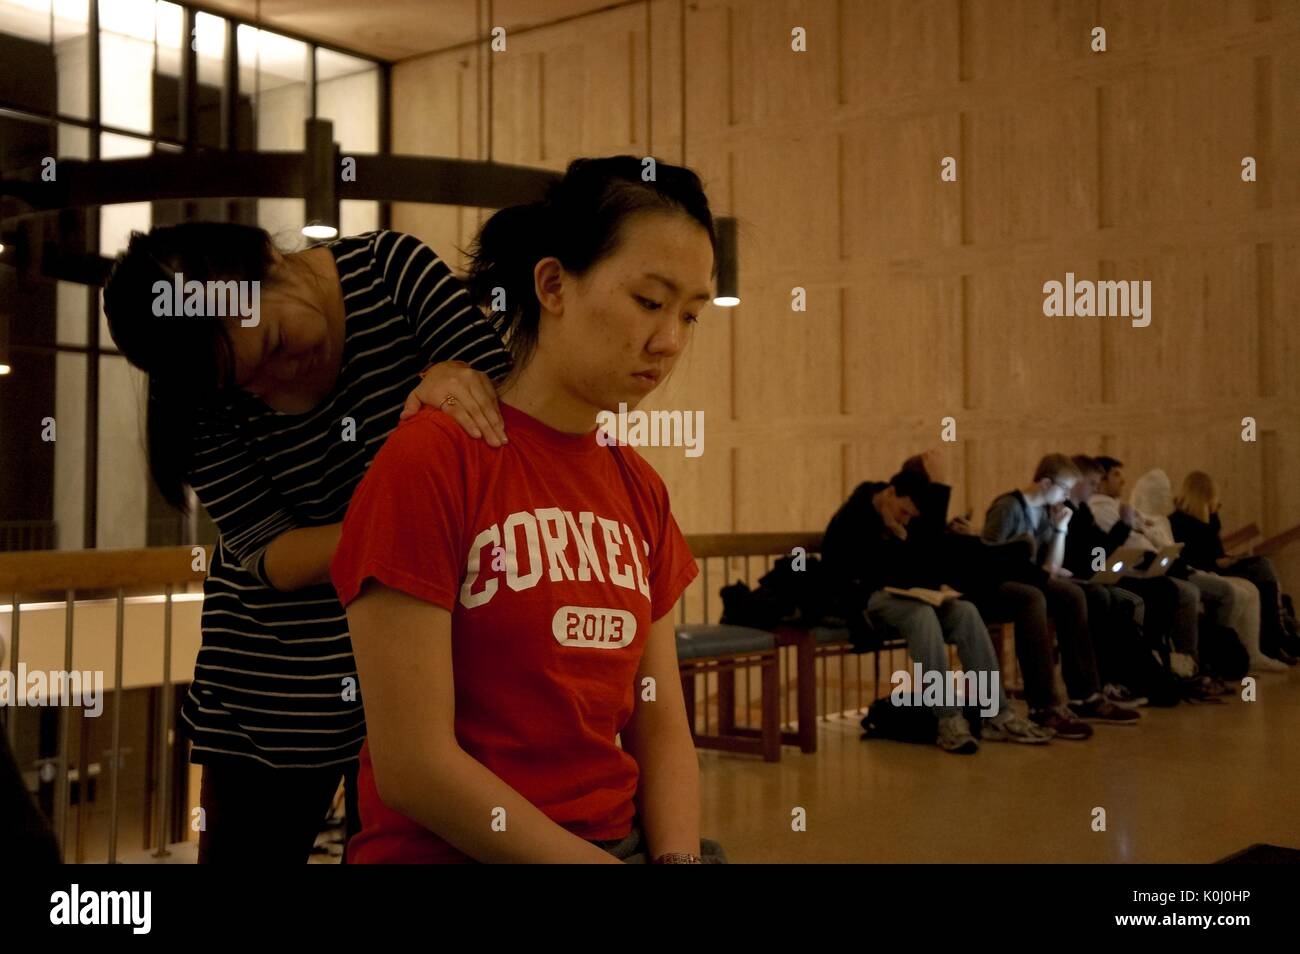 A member of the Stress Busters, a student group that gives free massages to their peers, gives one of her peers a back massage as other students wait on a bench, studying, on Q-Level of the Milton S. Eisenhower library on the Homewood campus of the Johns Hopkins University in Baltimore, Maryland, 2015. Courtesy Eric Chen. - Stock Image